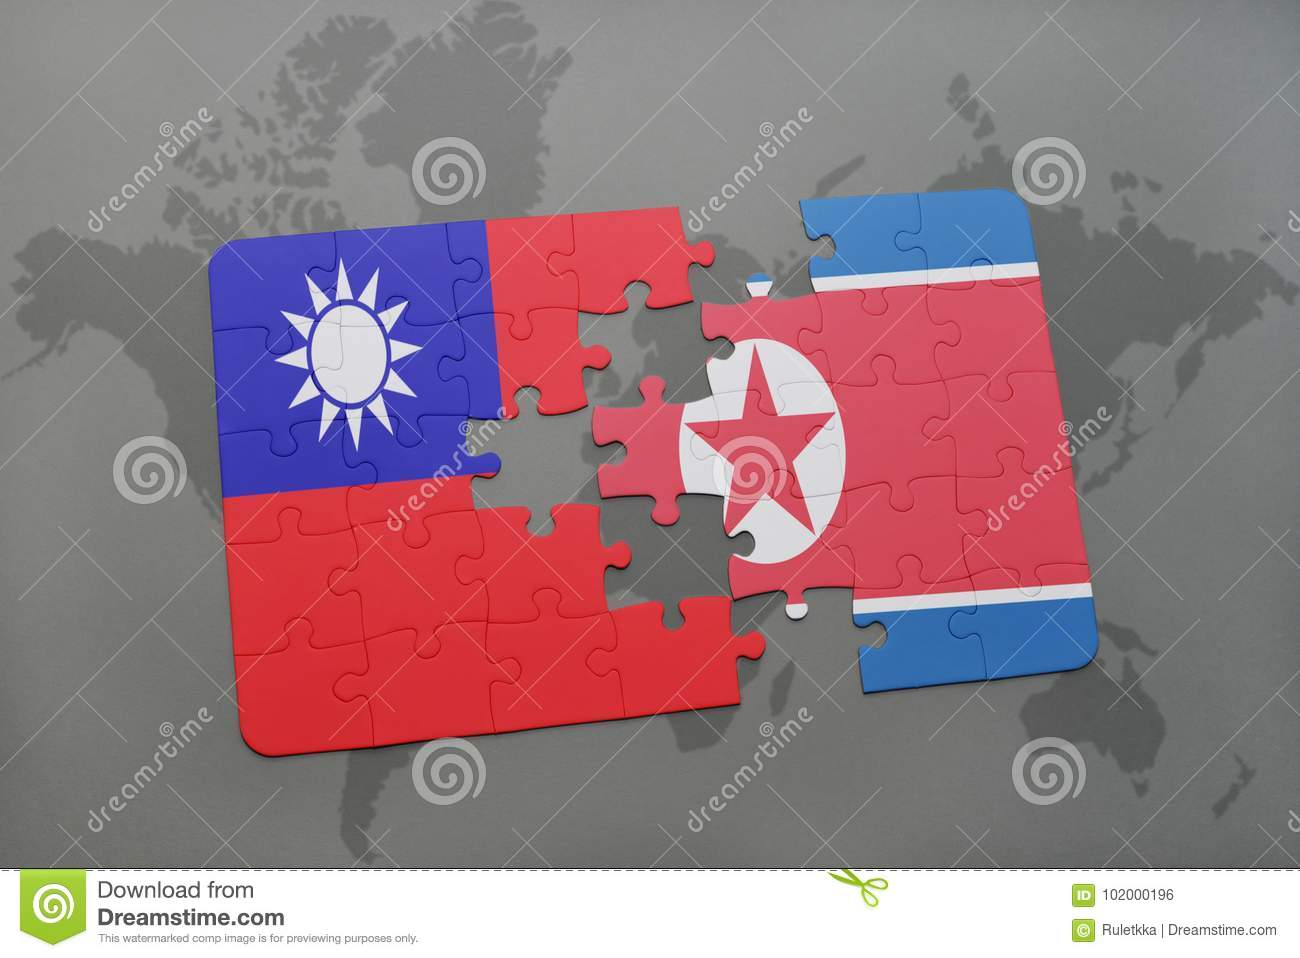 Puzzle with the national flag of taiwan and north korea on a world download puzzle with the national flag of taiwan and north korea on a world map background gumiabroncs Image collections